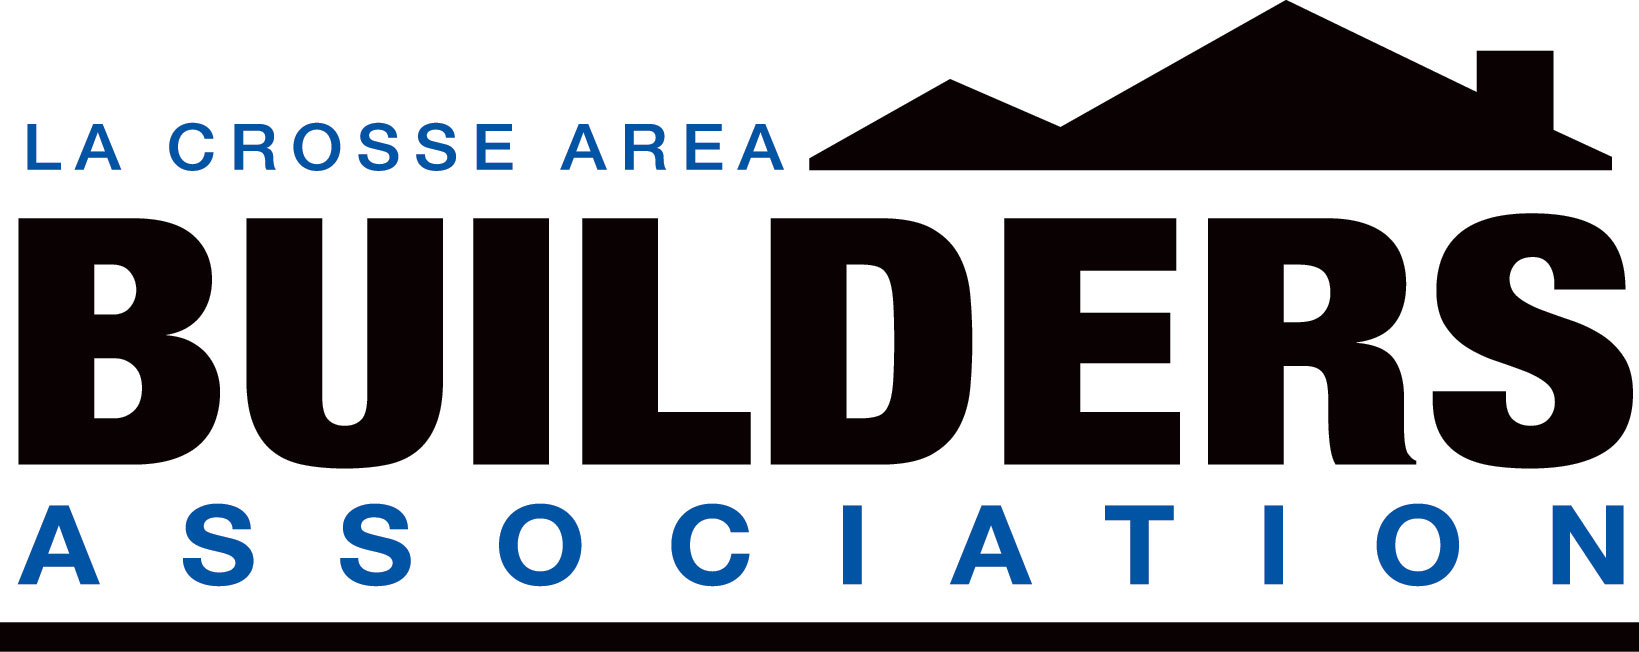 La Crosse Area Builders Association